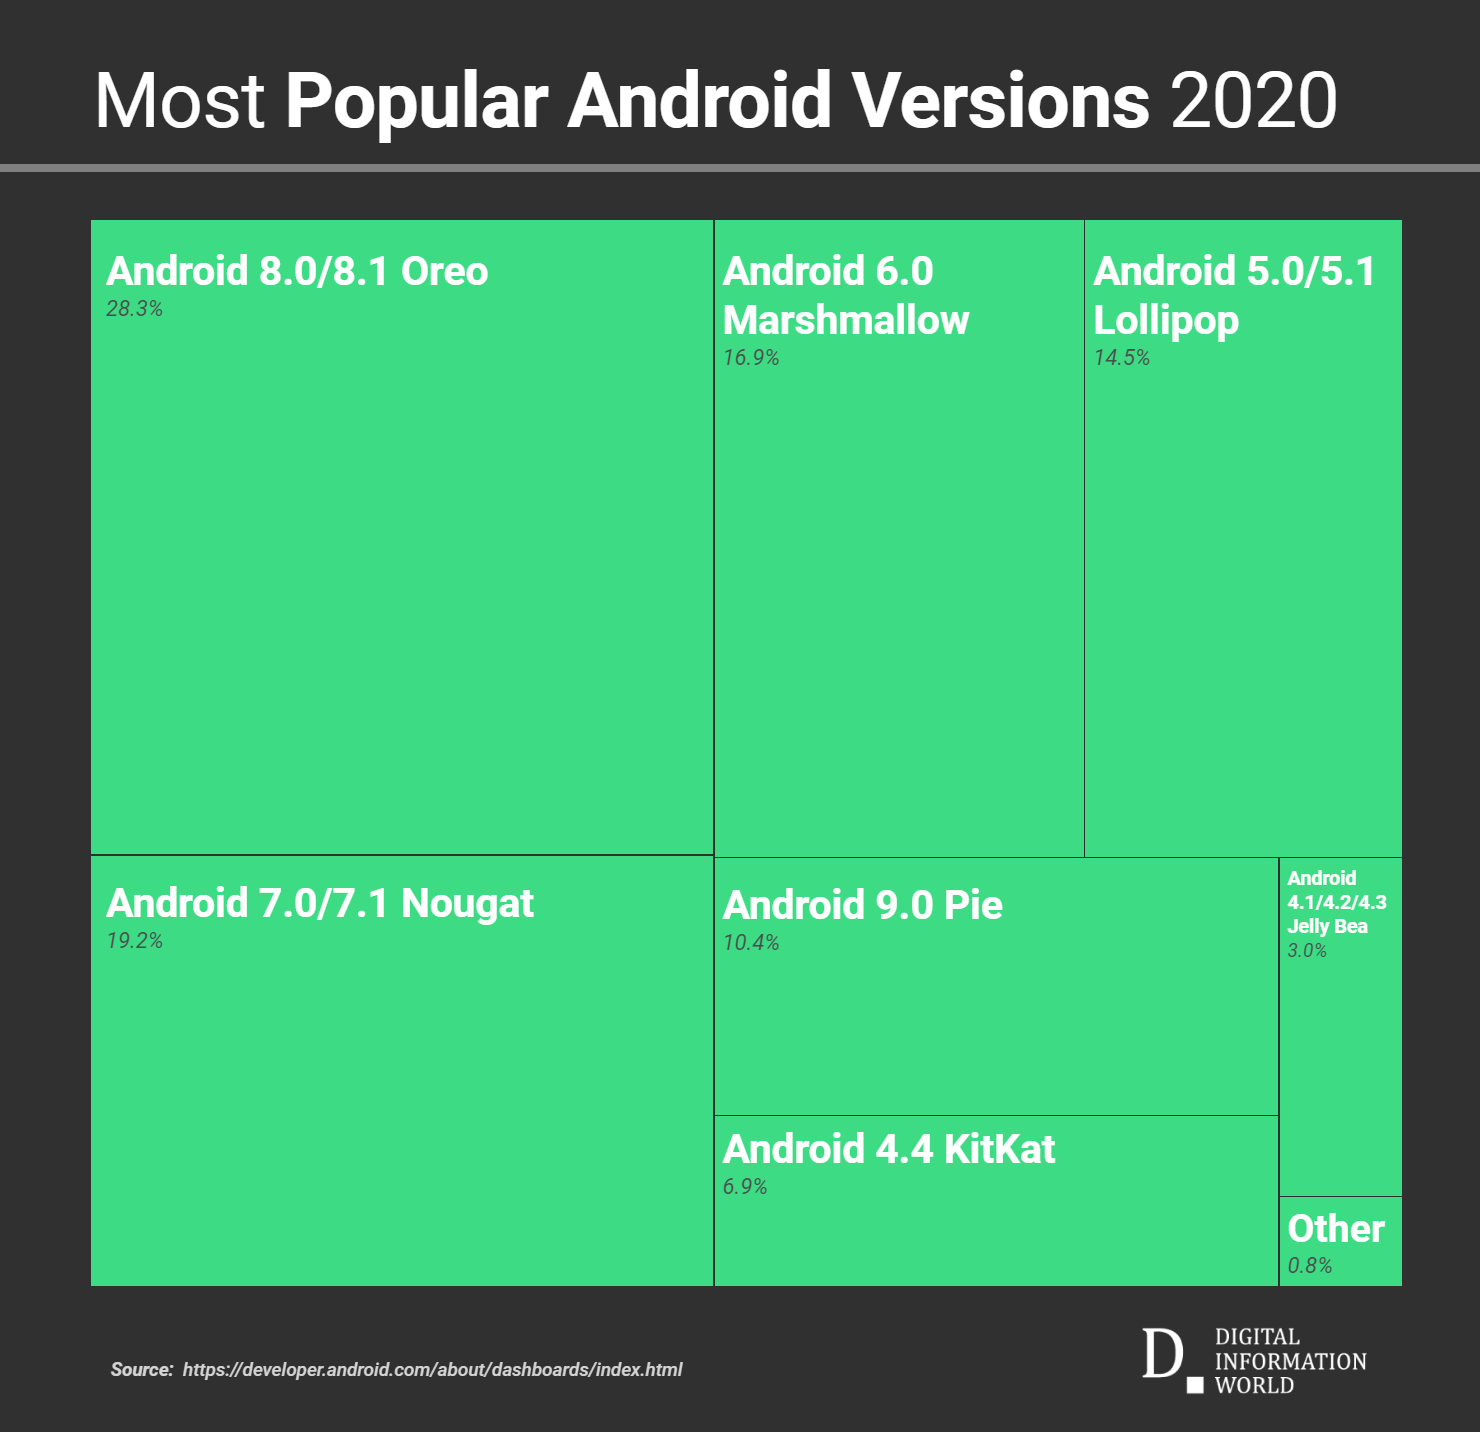 Did Google update Android Platform Versions data only once in the last year?